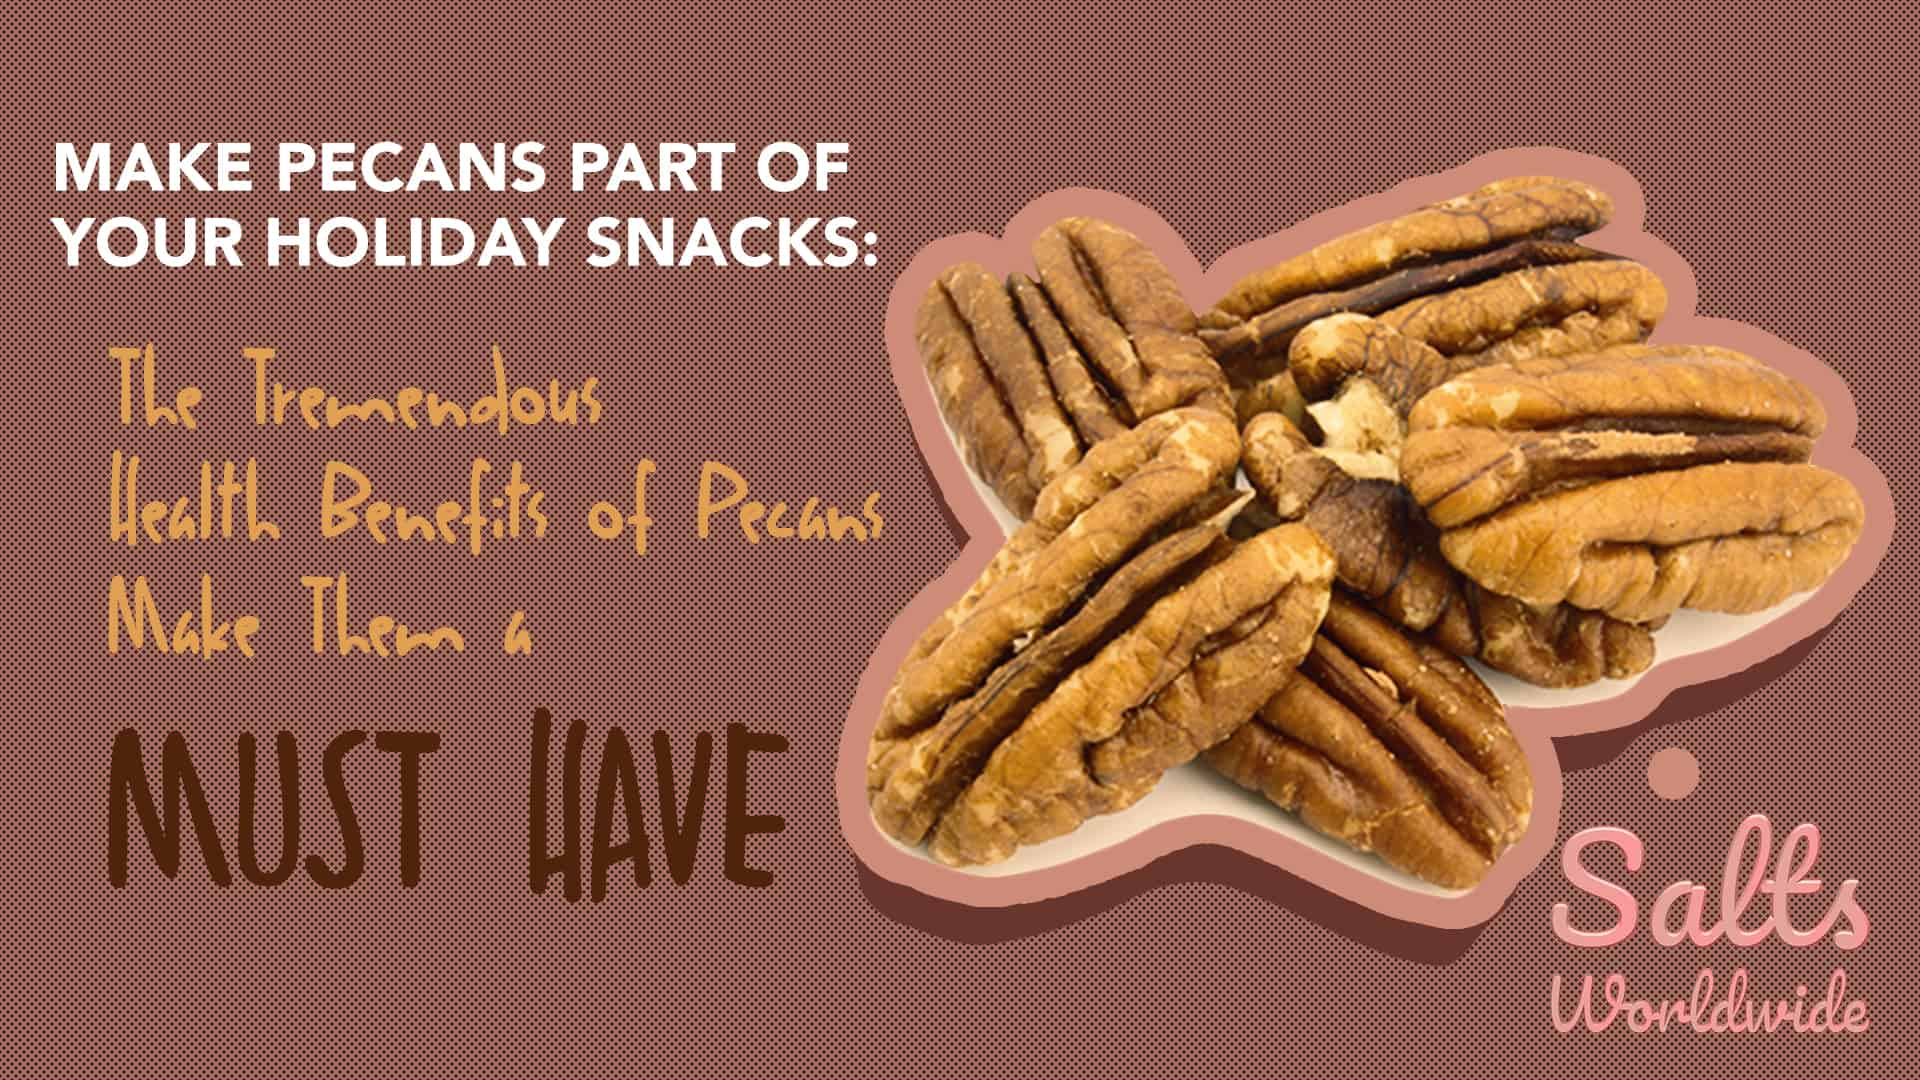 Make Pecans Part of Your Holiday Snacks The Tremendous Health Benefits of Pecans Make Them a Must Have - Featured image